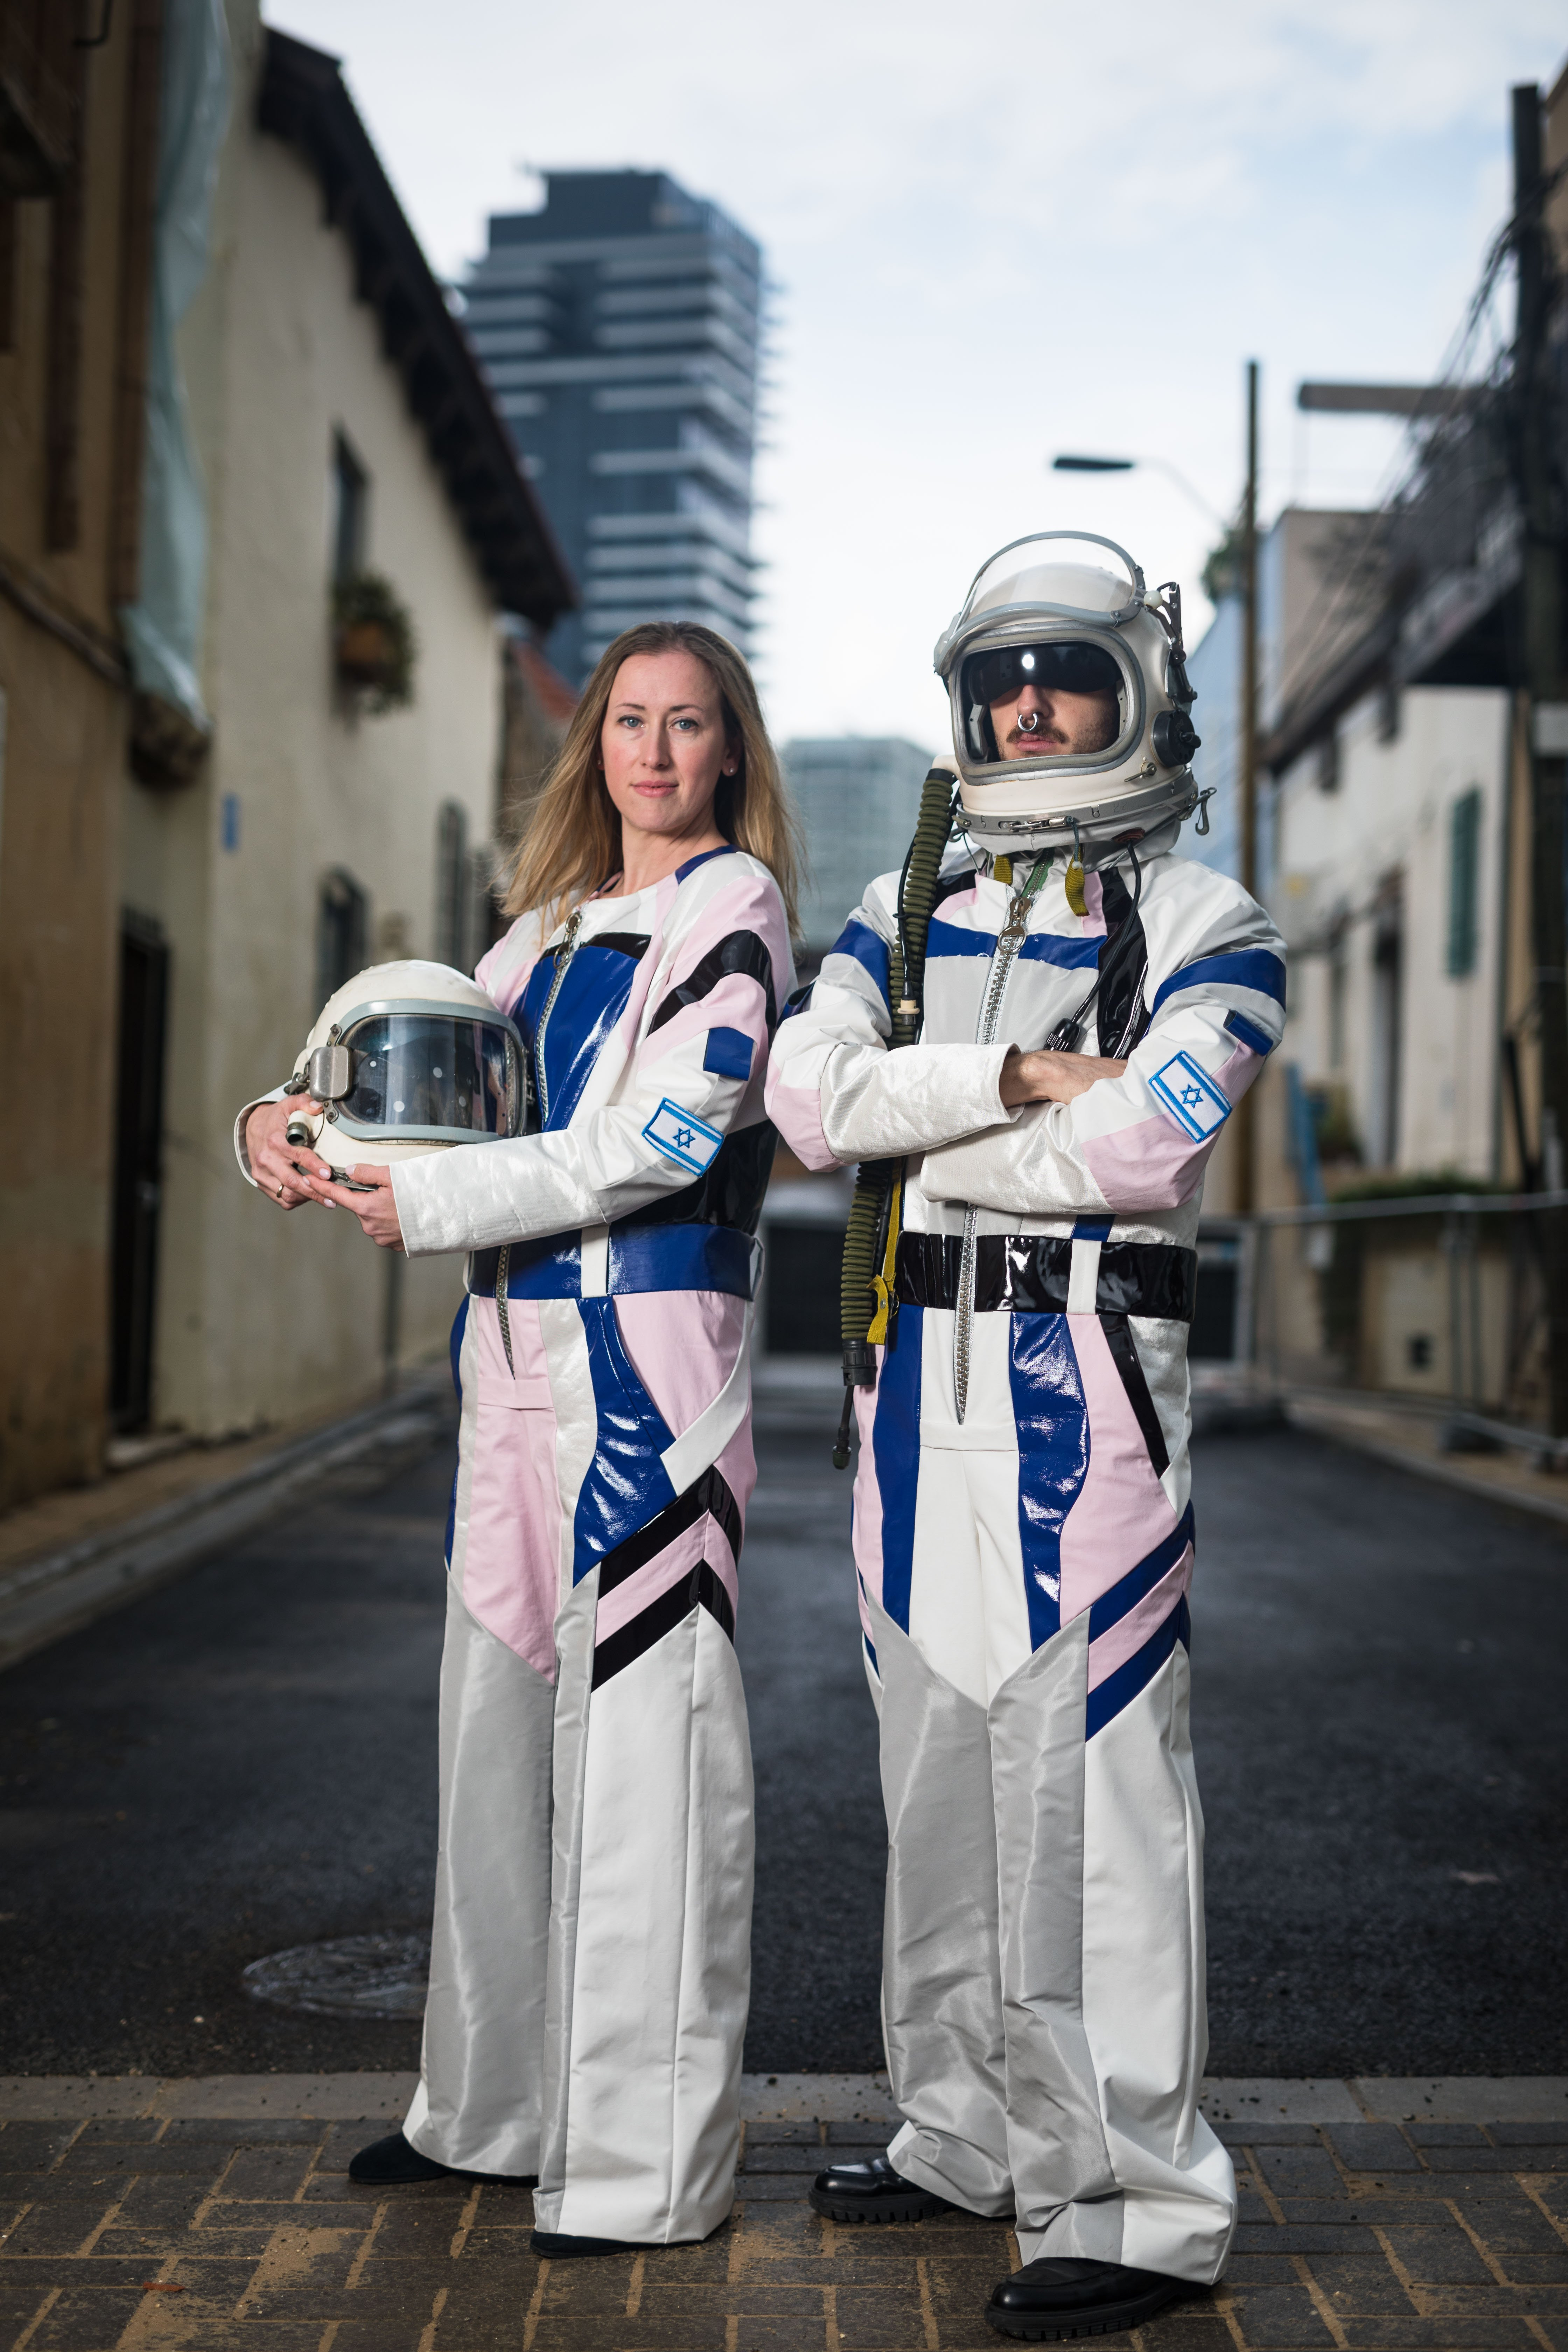 Popular designer Alon Livne worked with the Israel Space Agency to design the space suits for astronauts. Courtesy